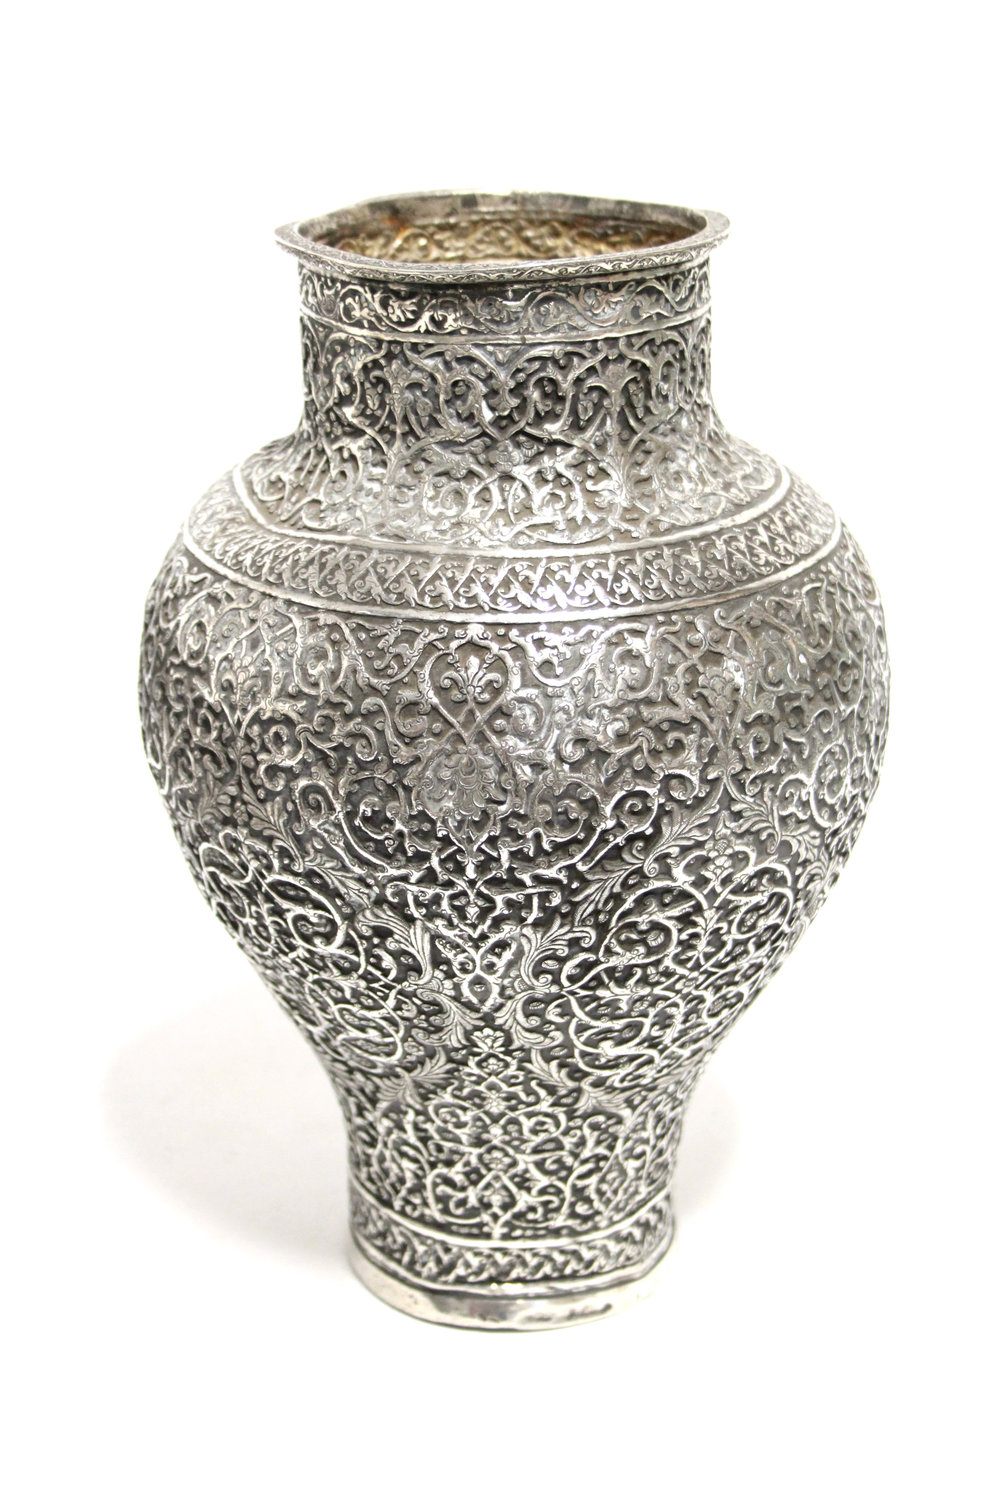 Sold For £23,000 An early Persian silver vase